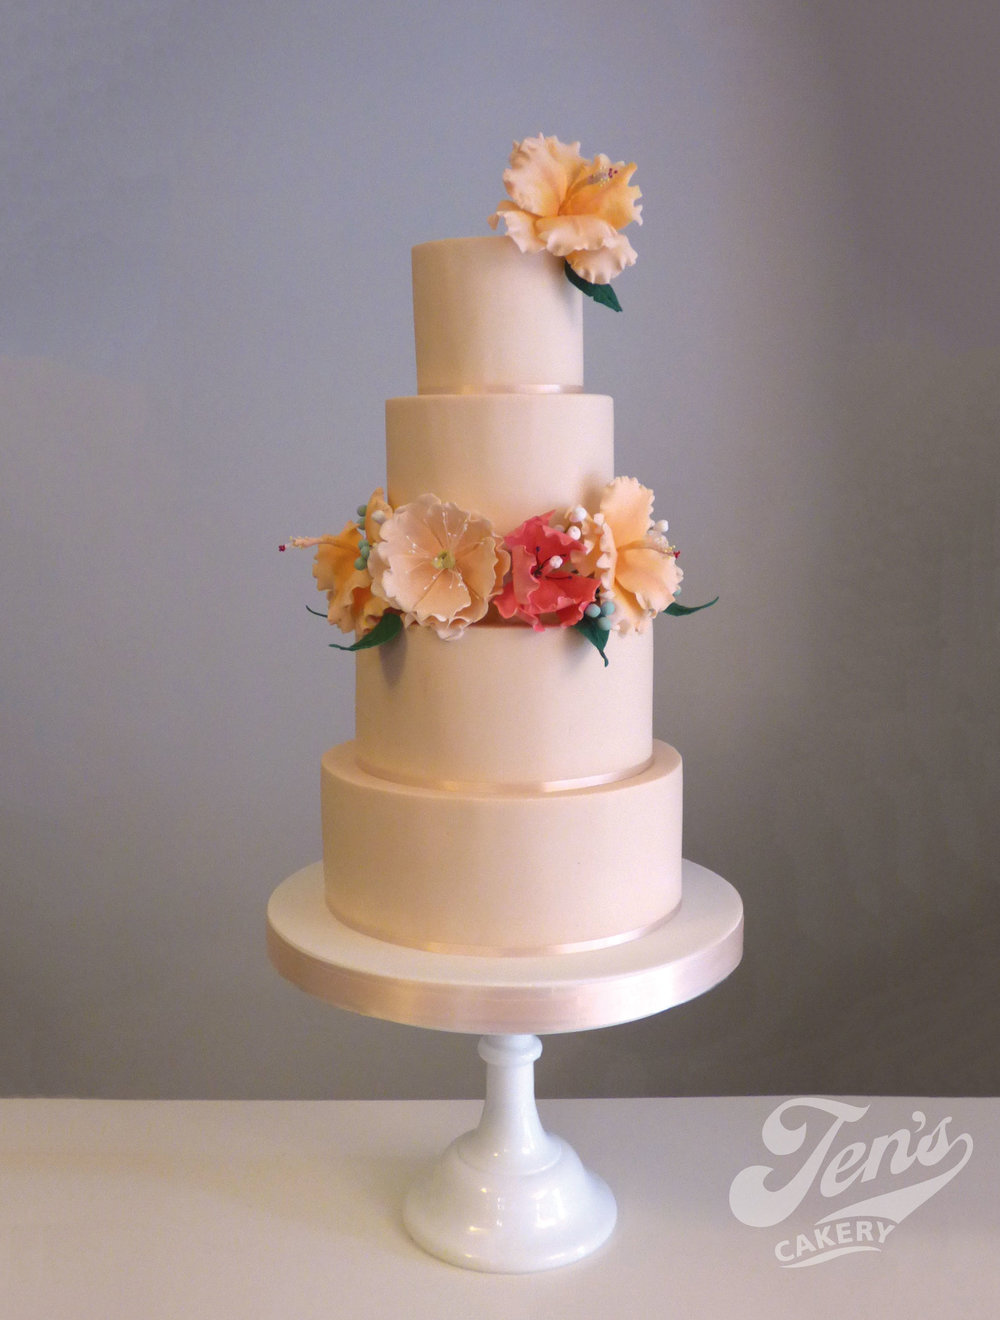 Blush cake with sugar tropical lflowers